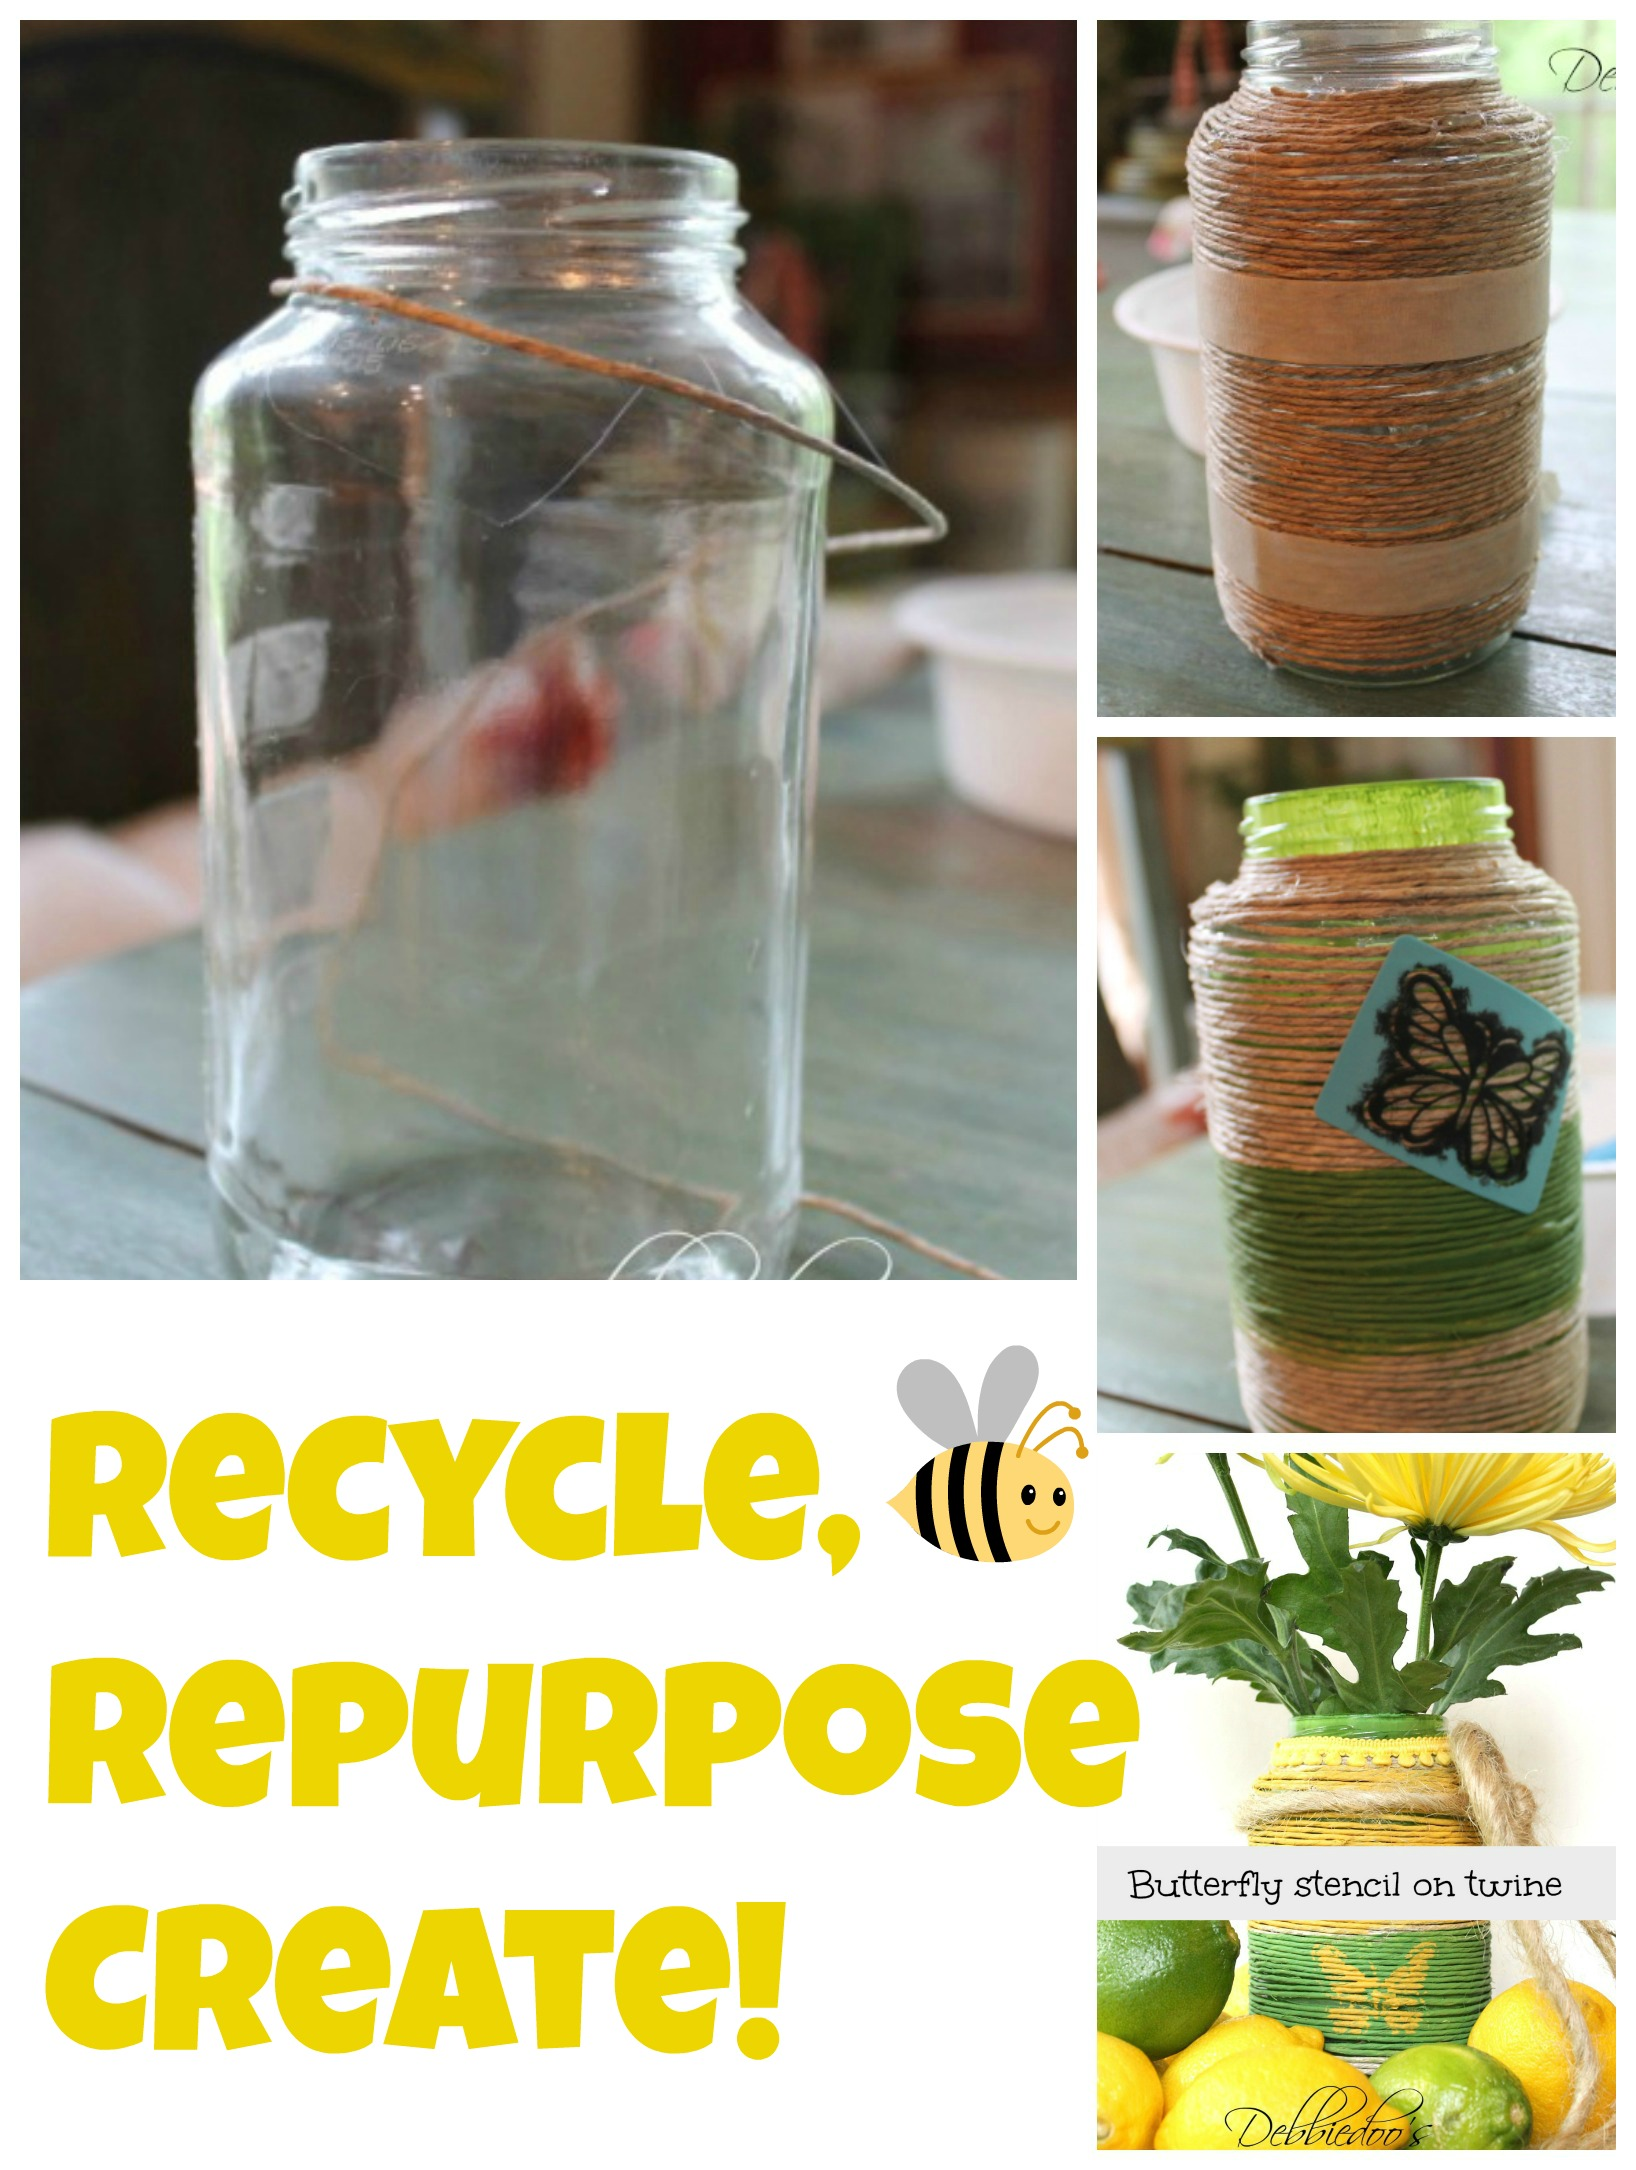 #recycle,#repurpose, create